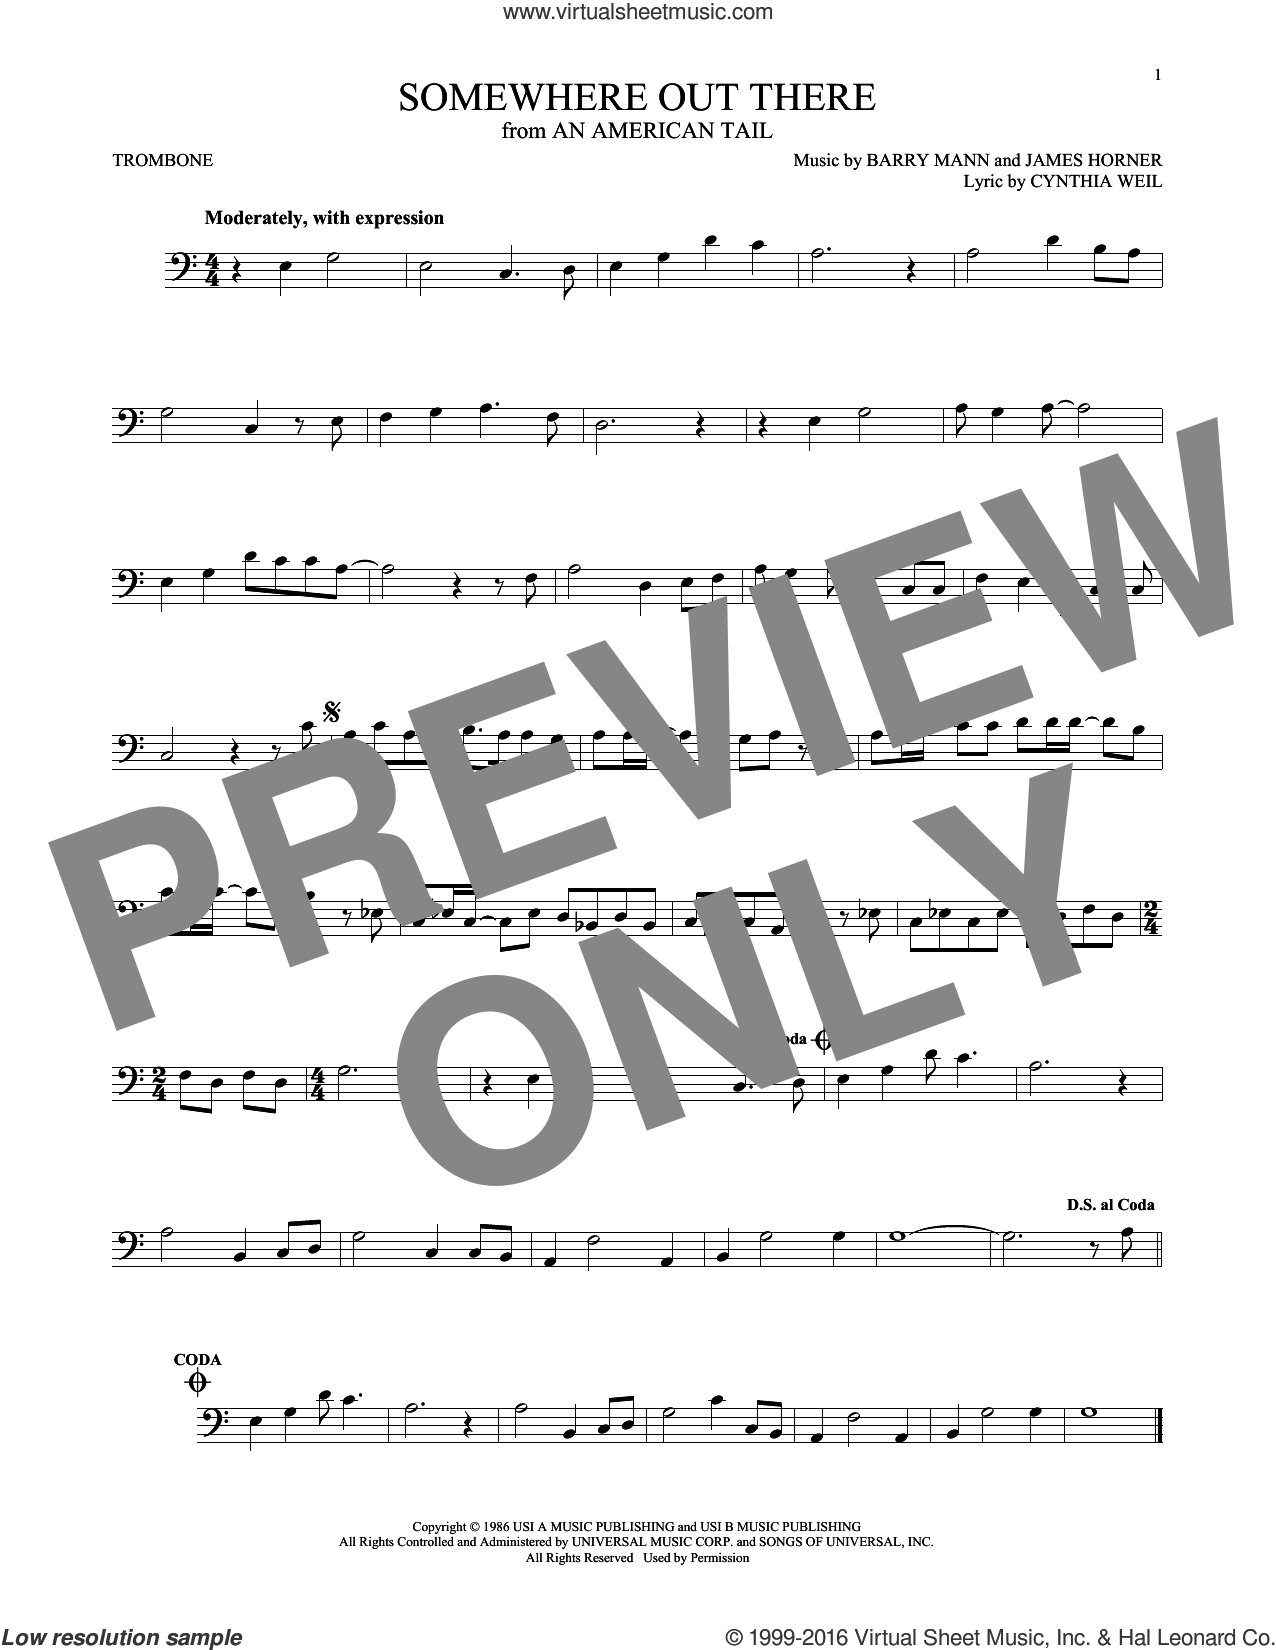 Somewhere Out There sheet music for trombone solo by Linda Ronstadt & James Ingram, Barry Mann, Cynthia Weil and James Horner, intermediate skill level